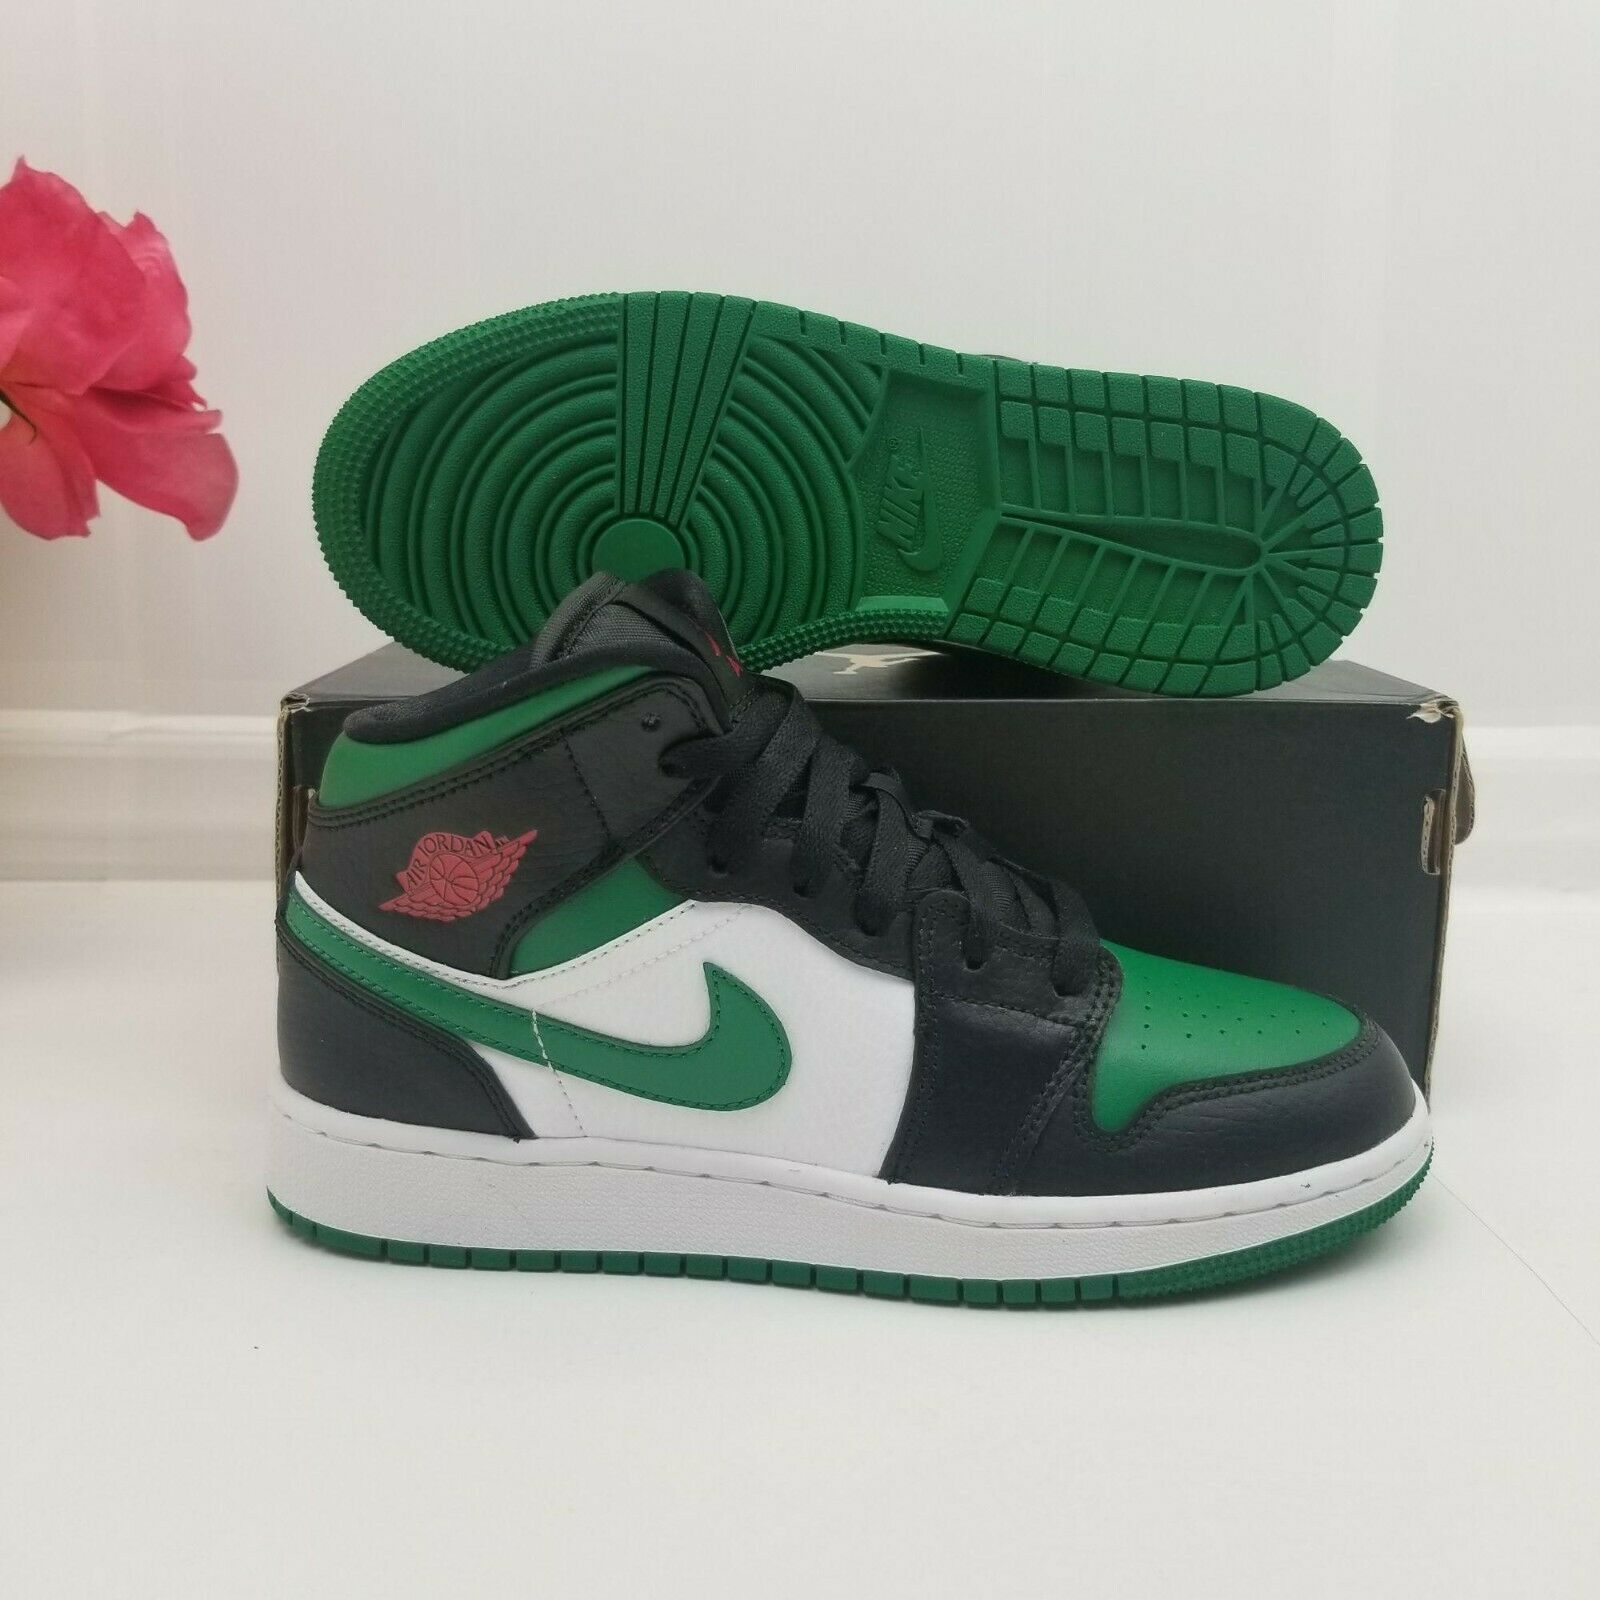 Jordan 1 Mid Green Toe GS